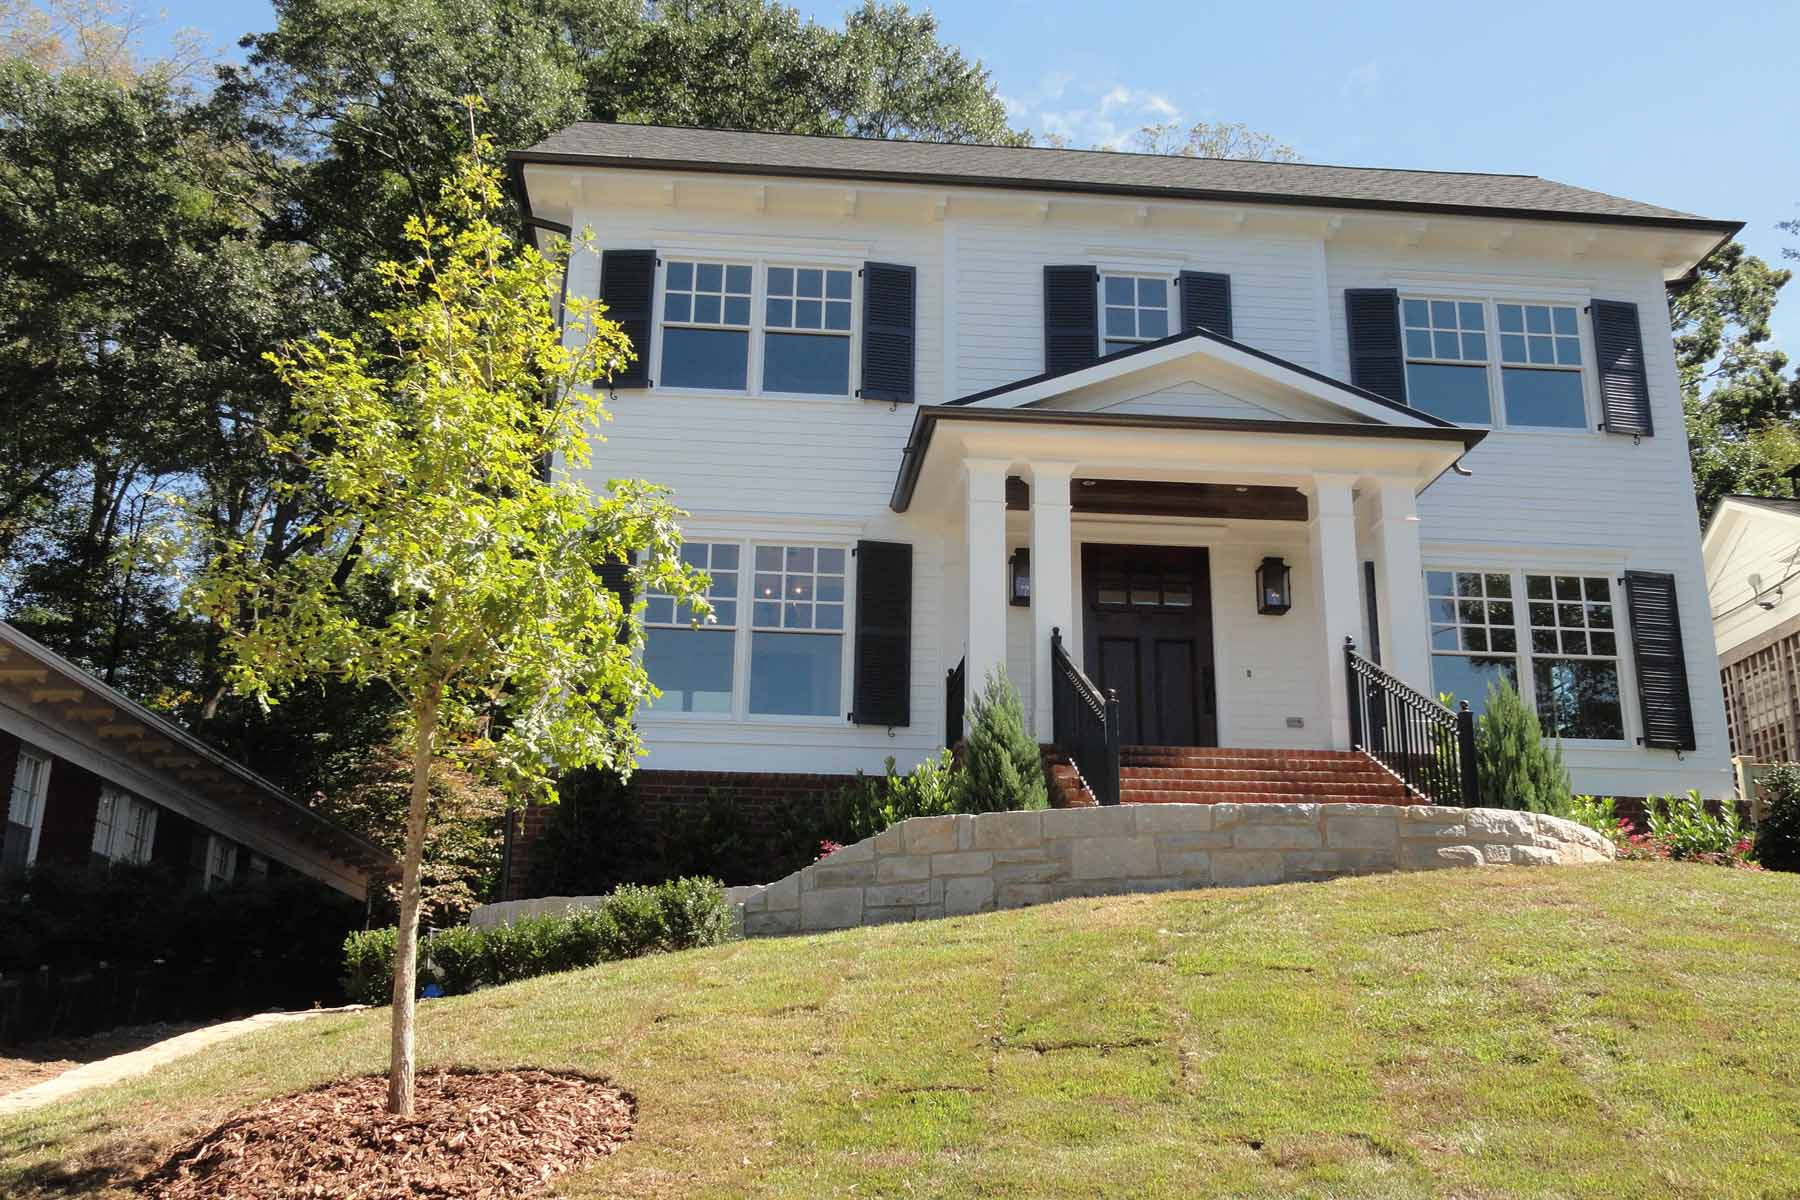 Single Family Home for Sale at Quality New Construction located in the popular intown neighborhood of VH 1158 Virginia Avenue NE Virginia Highland, Atlanta, Georgia, 30306 United States